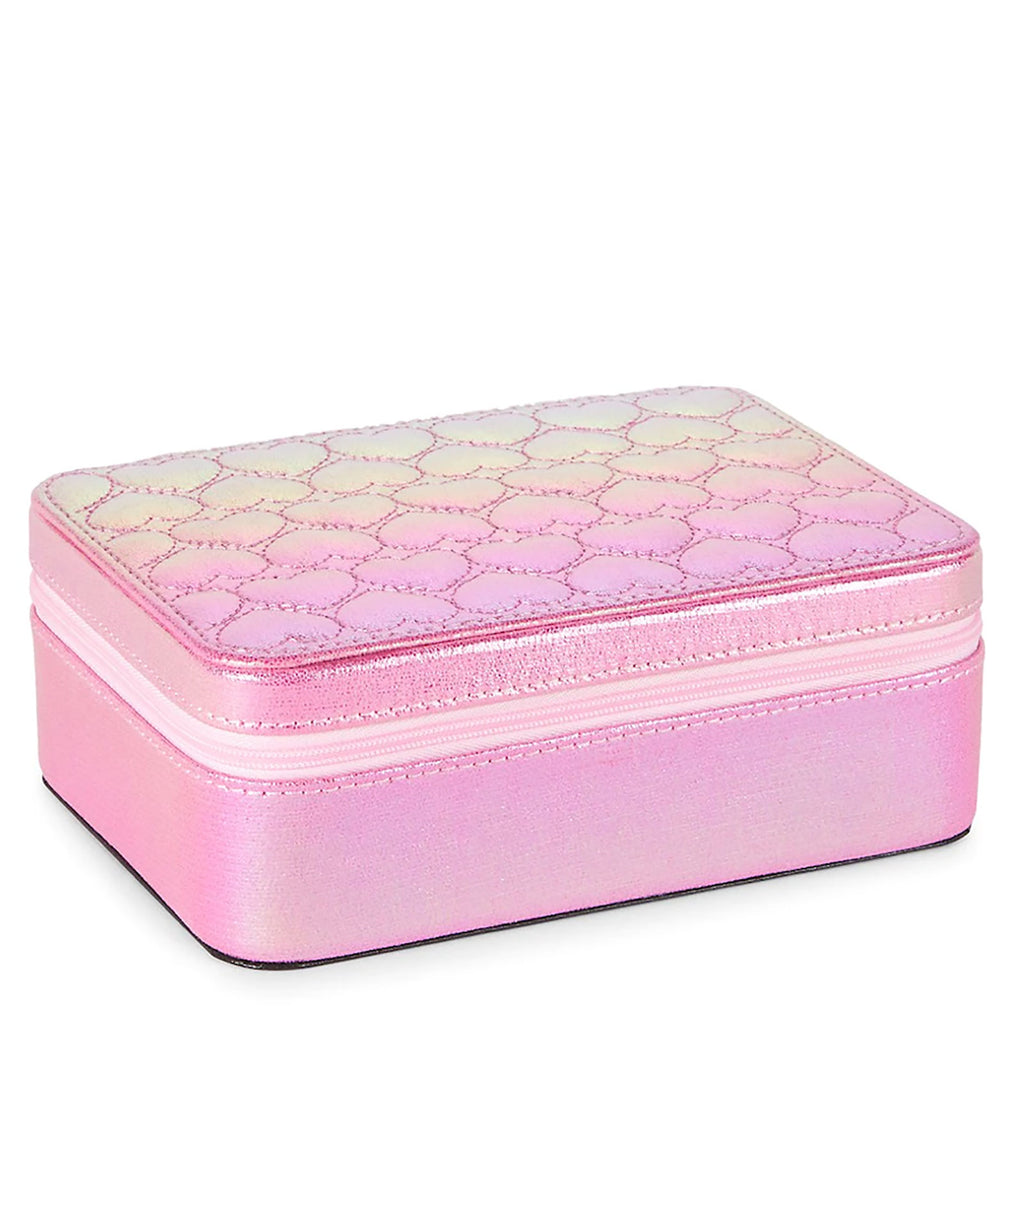 Bari Lynn Iridescent Small Heart Jewelry Box Pink